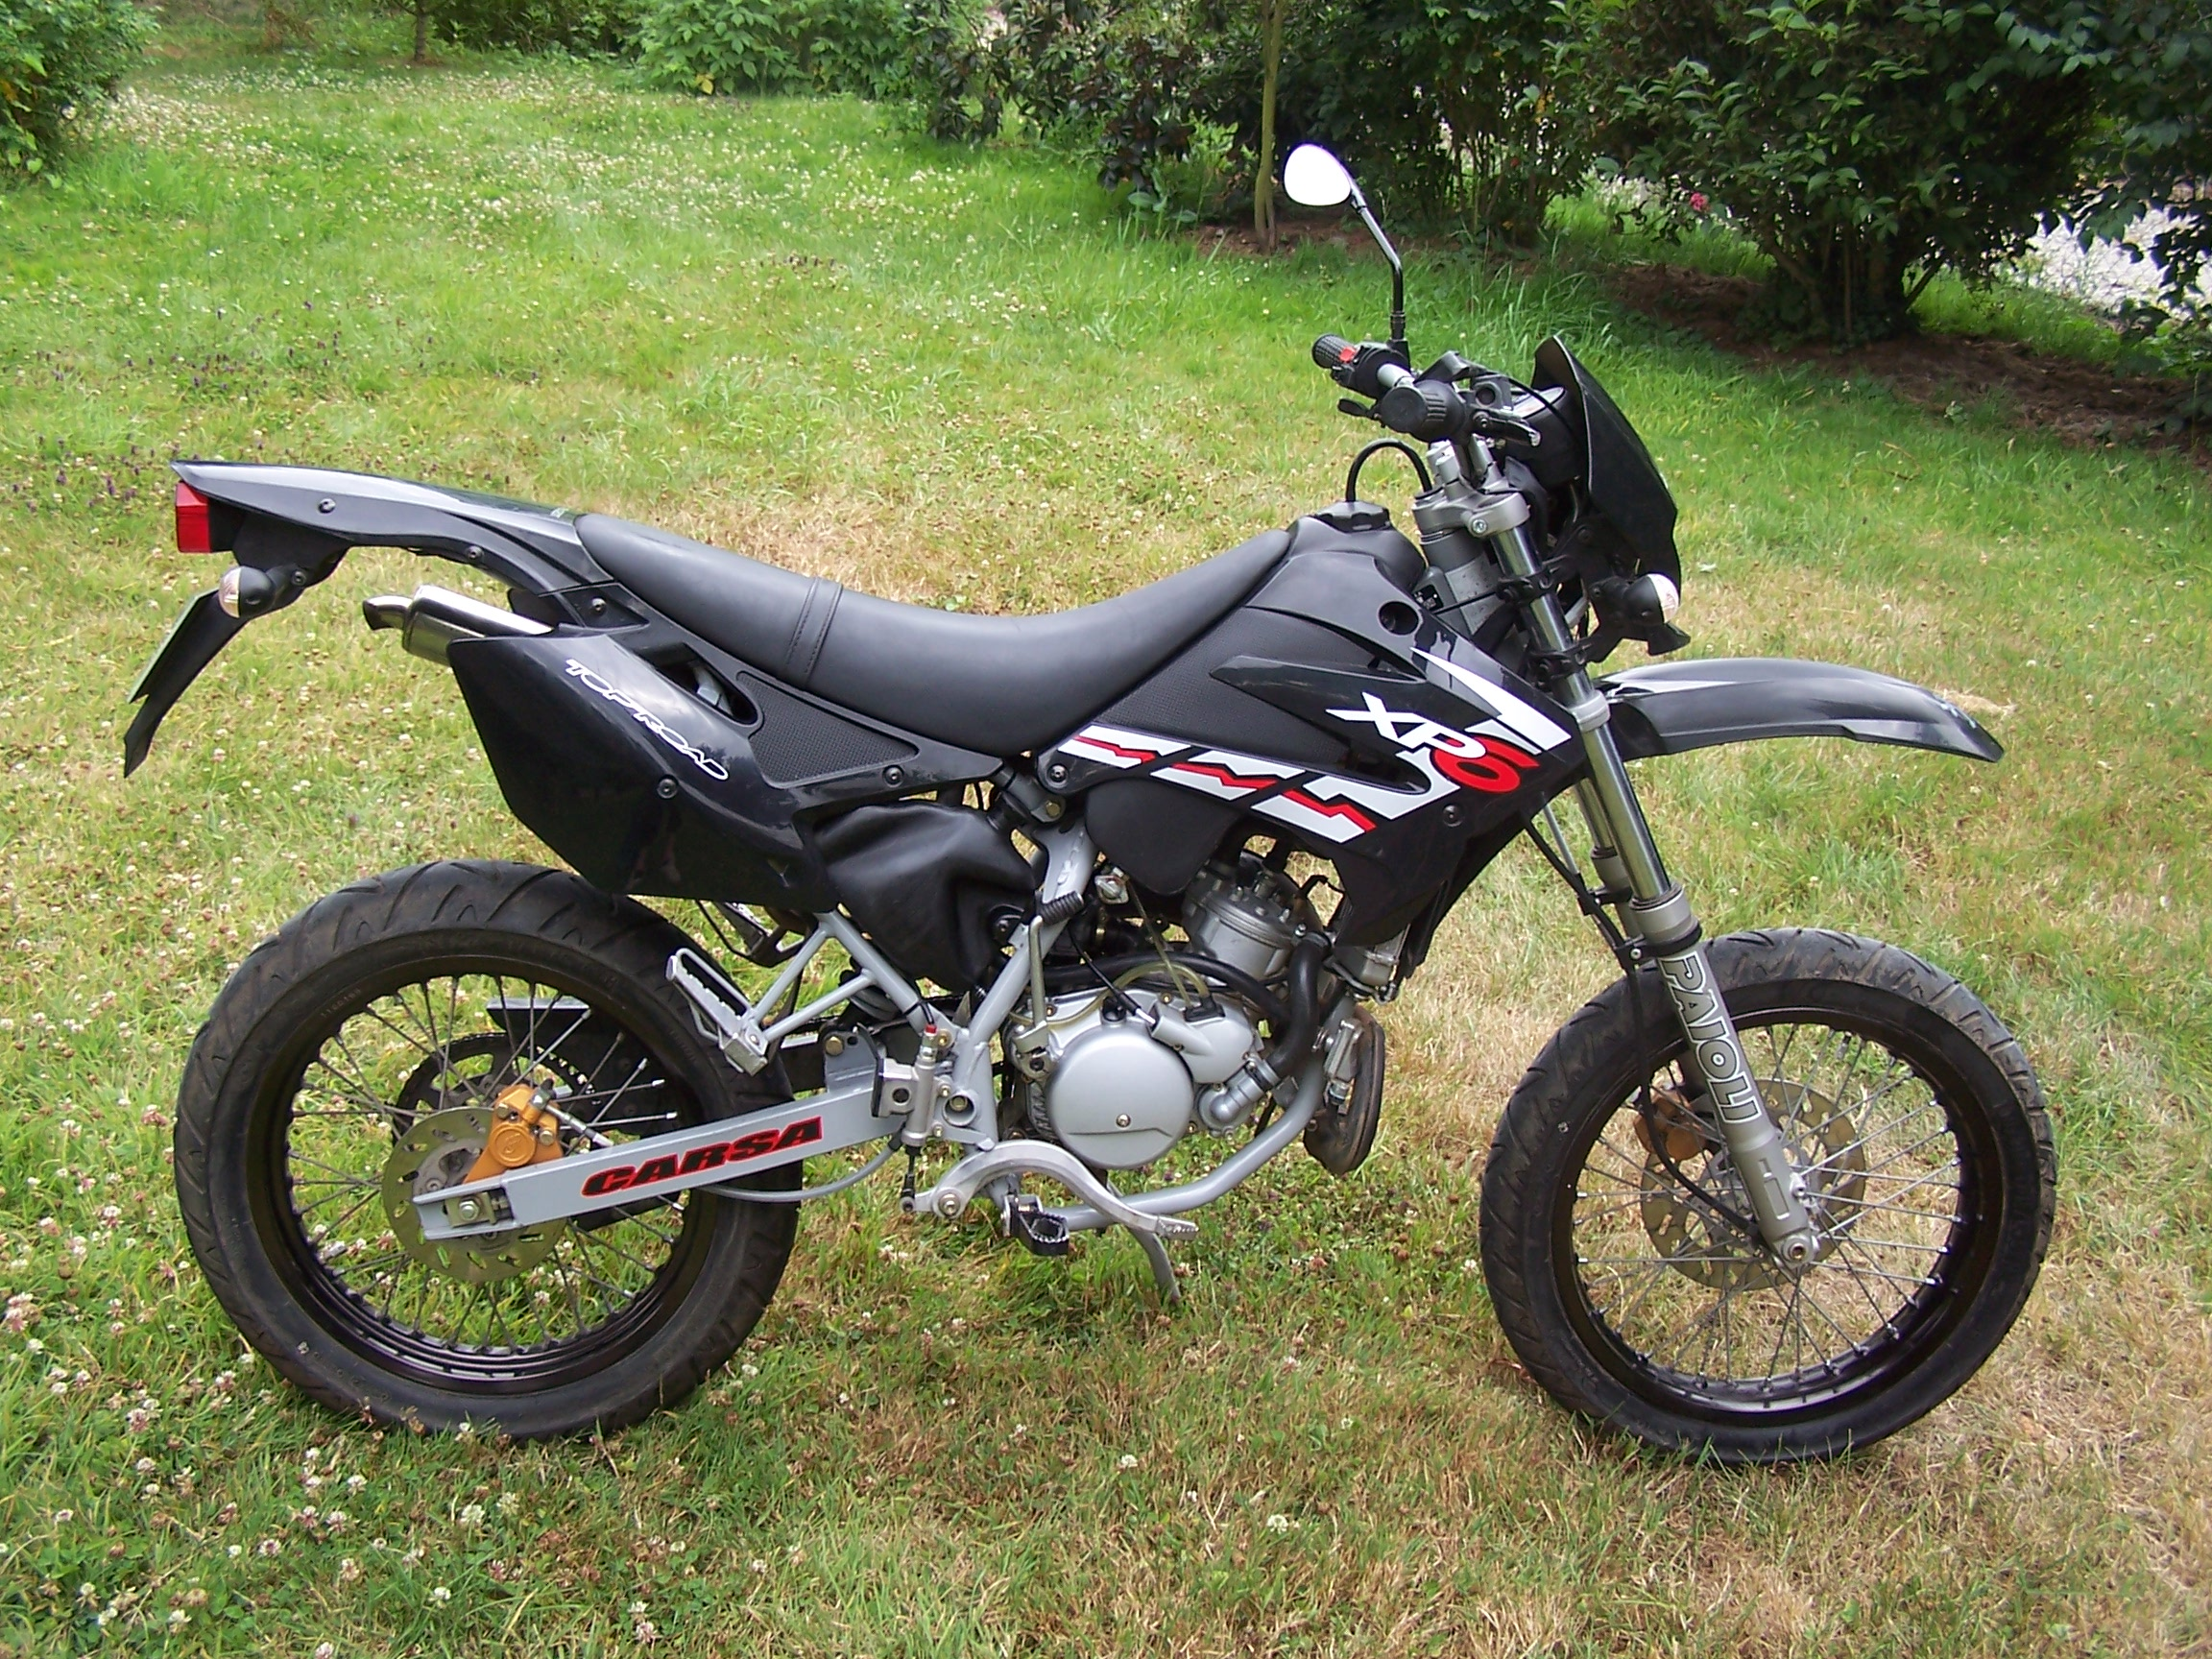 Peugeot XP6 50 Supermotard 2001 images #118977